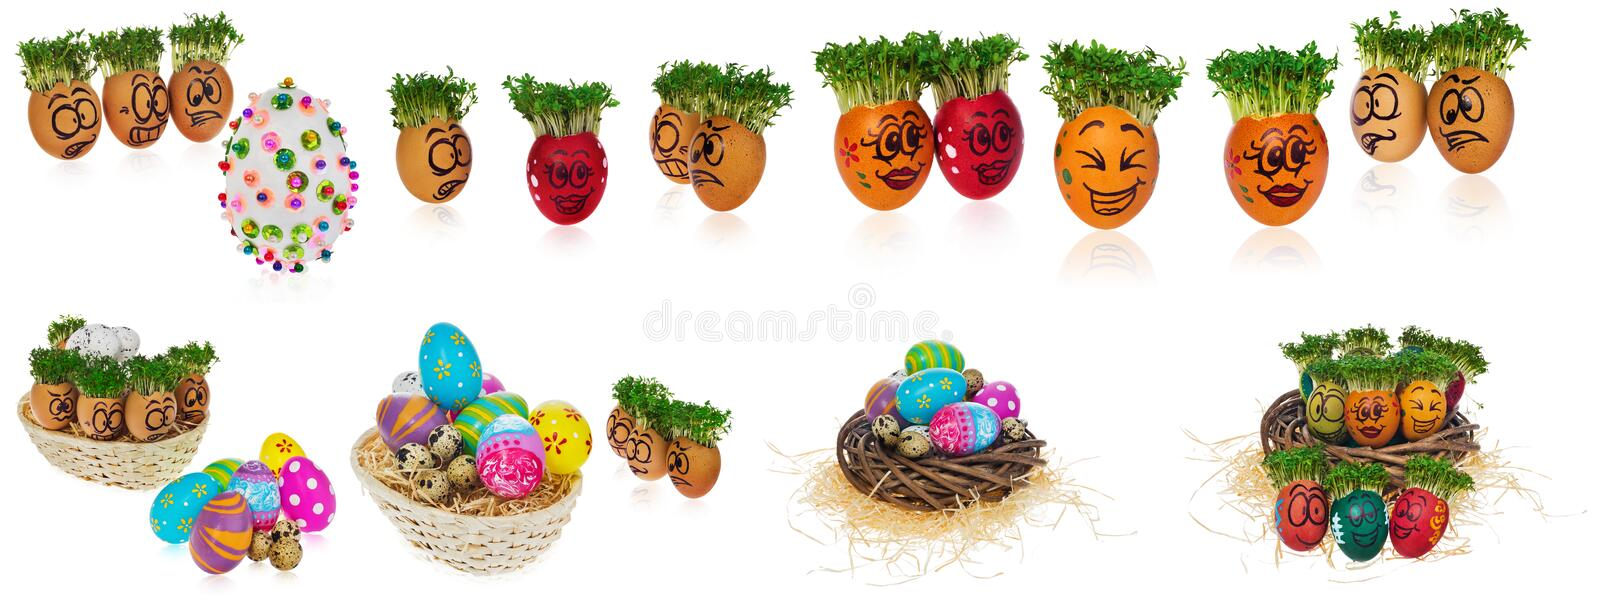 Handpainted Easter eggs in funny scared and surprised cartoonish faces in the basket with cress like hair look at the outstanding royalty free stock image